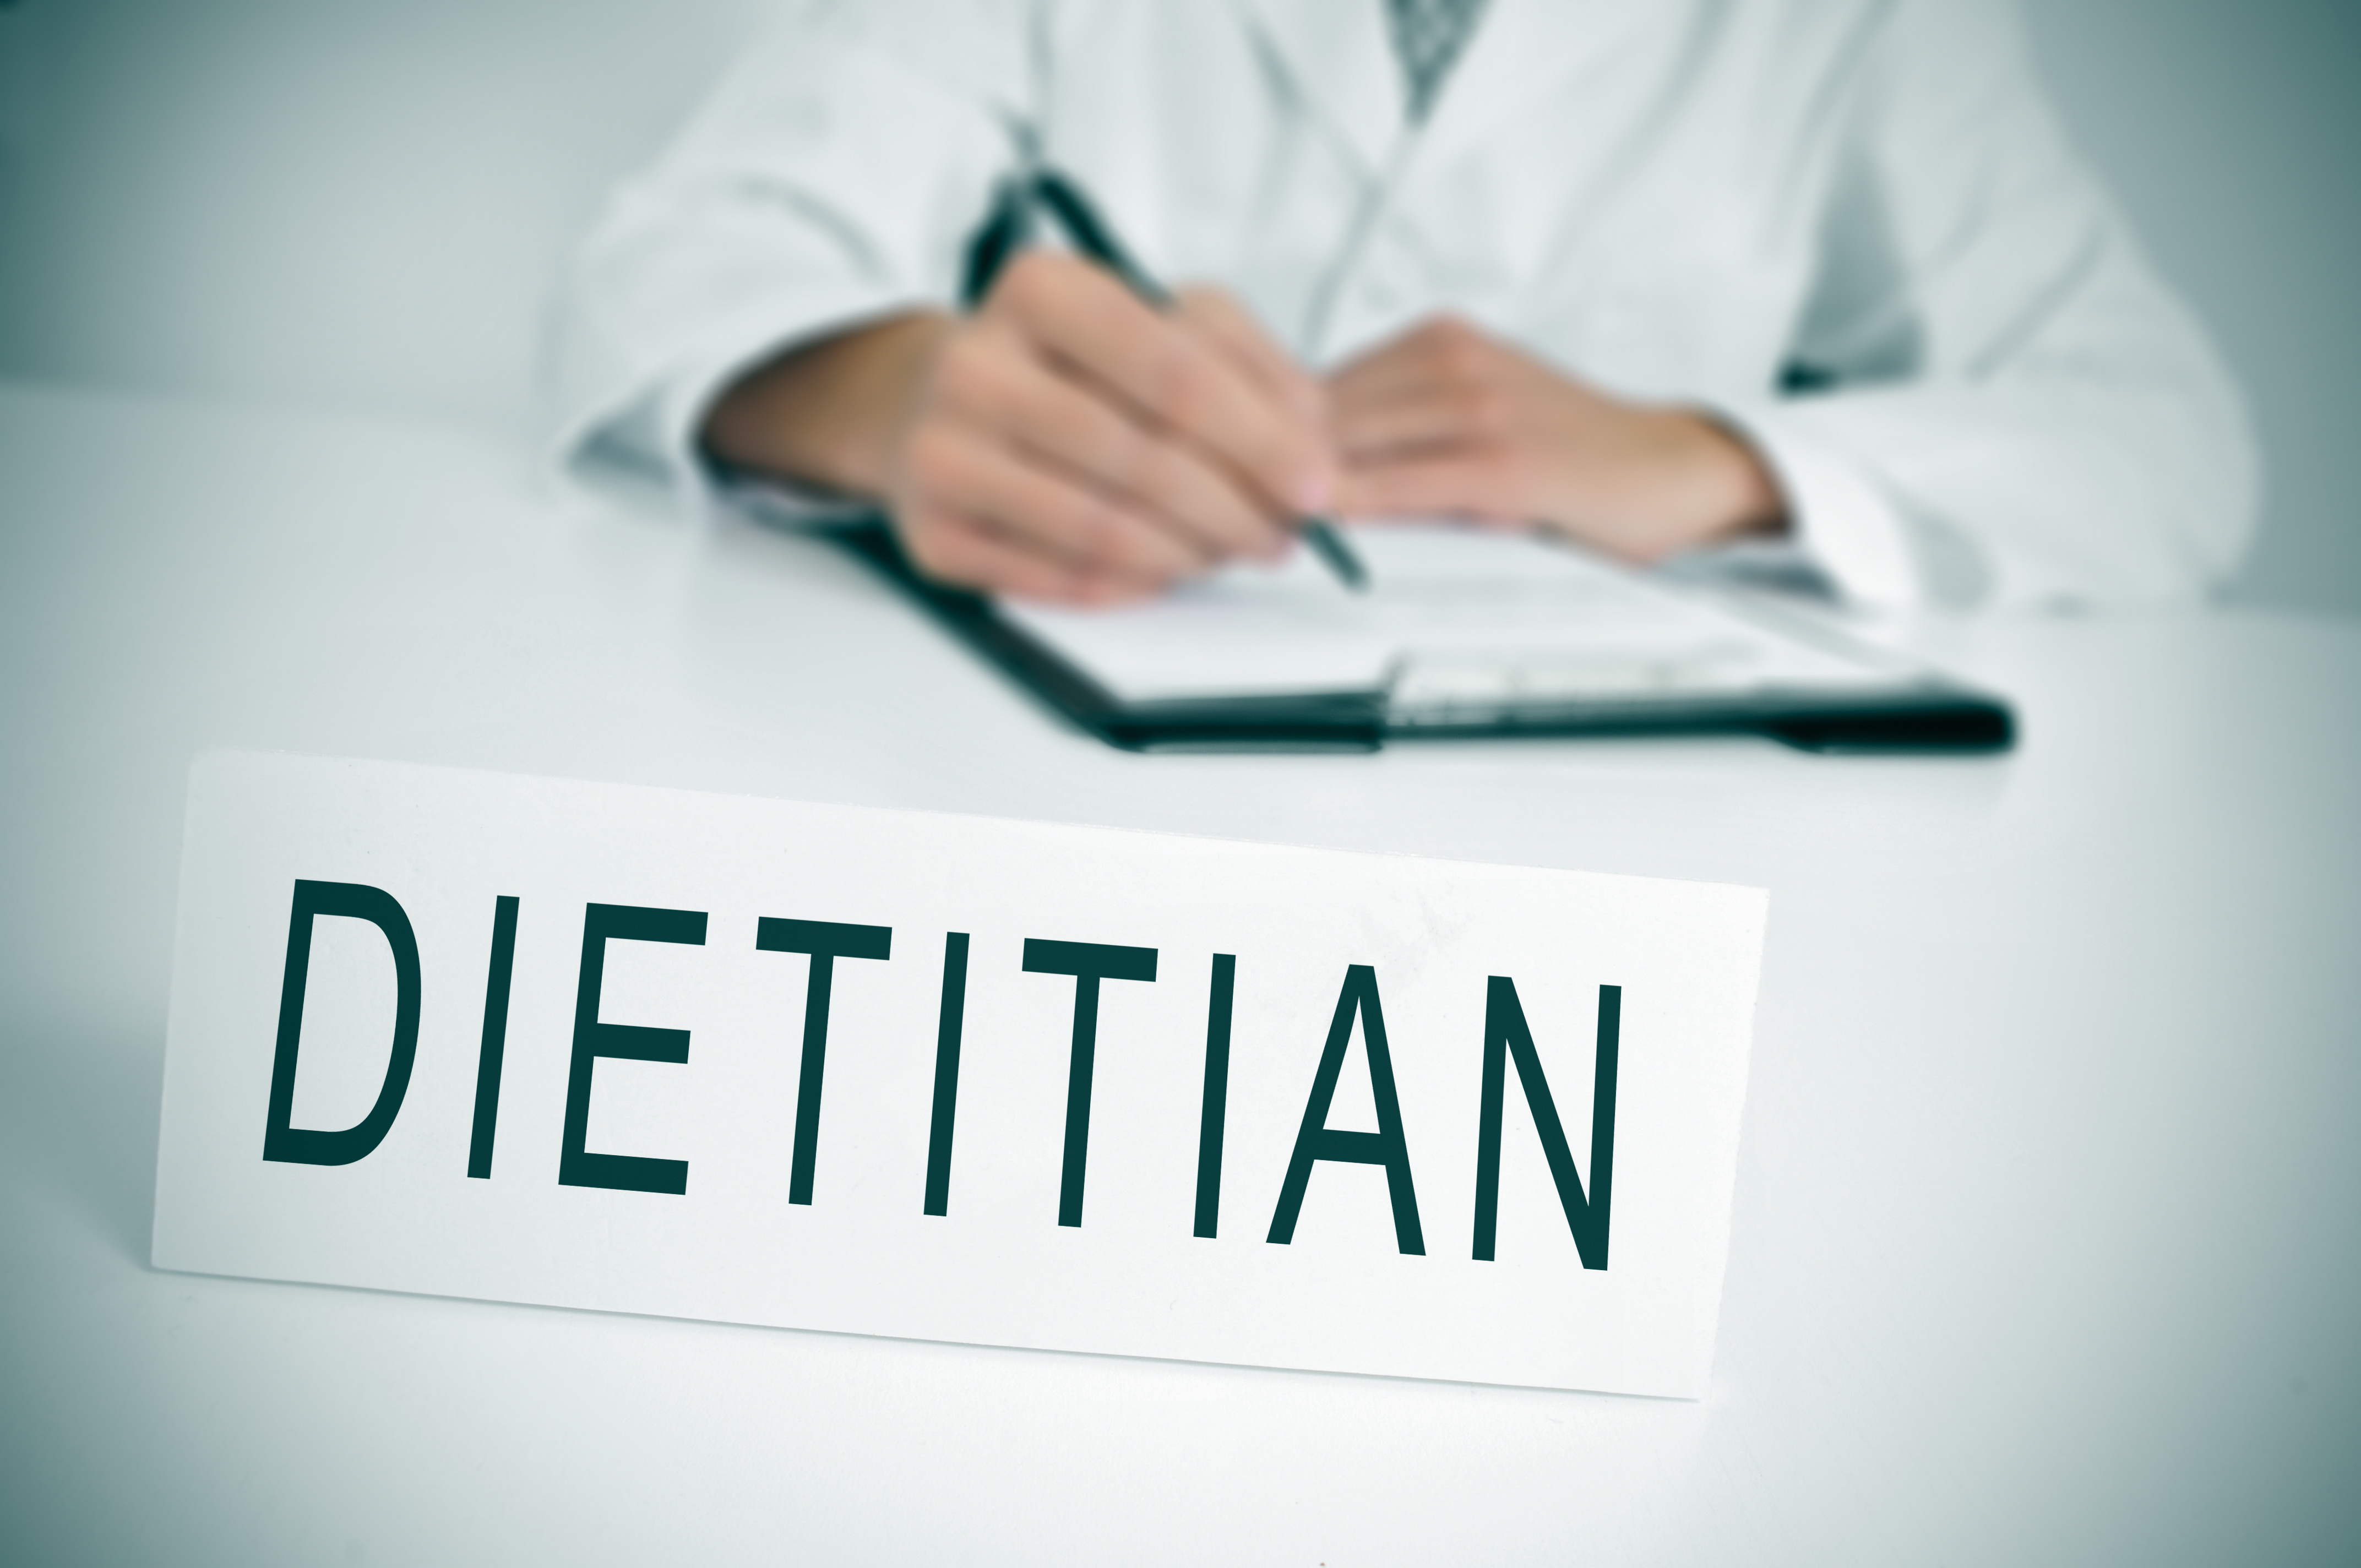 Dietitian sitting behind desk